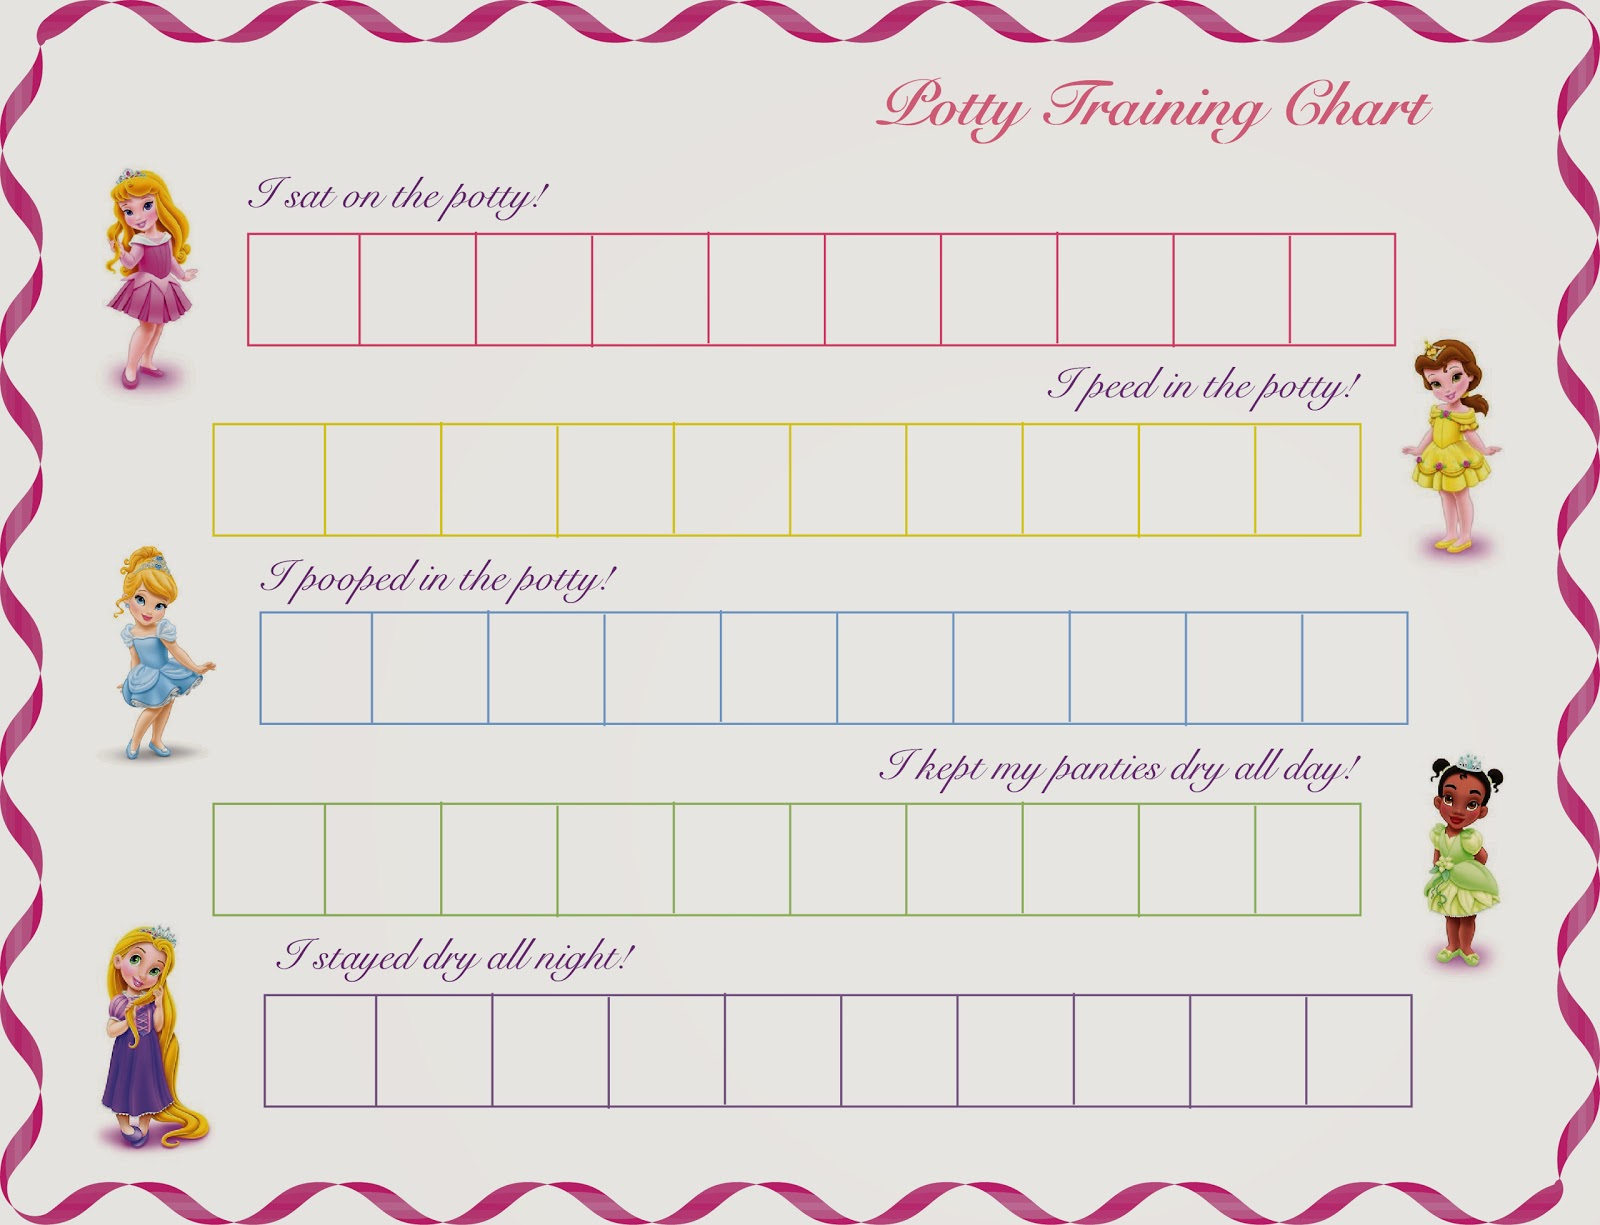 photograph regarding Free Printable Potty Training Charts referred to as Warm Commodity House Decor: No cost Printable Princess Potty